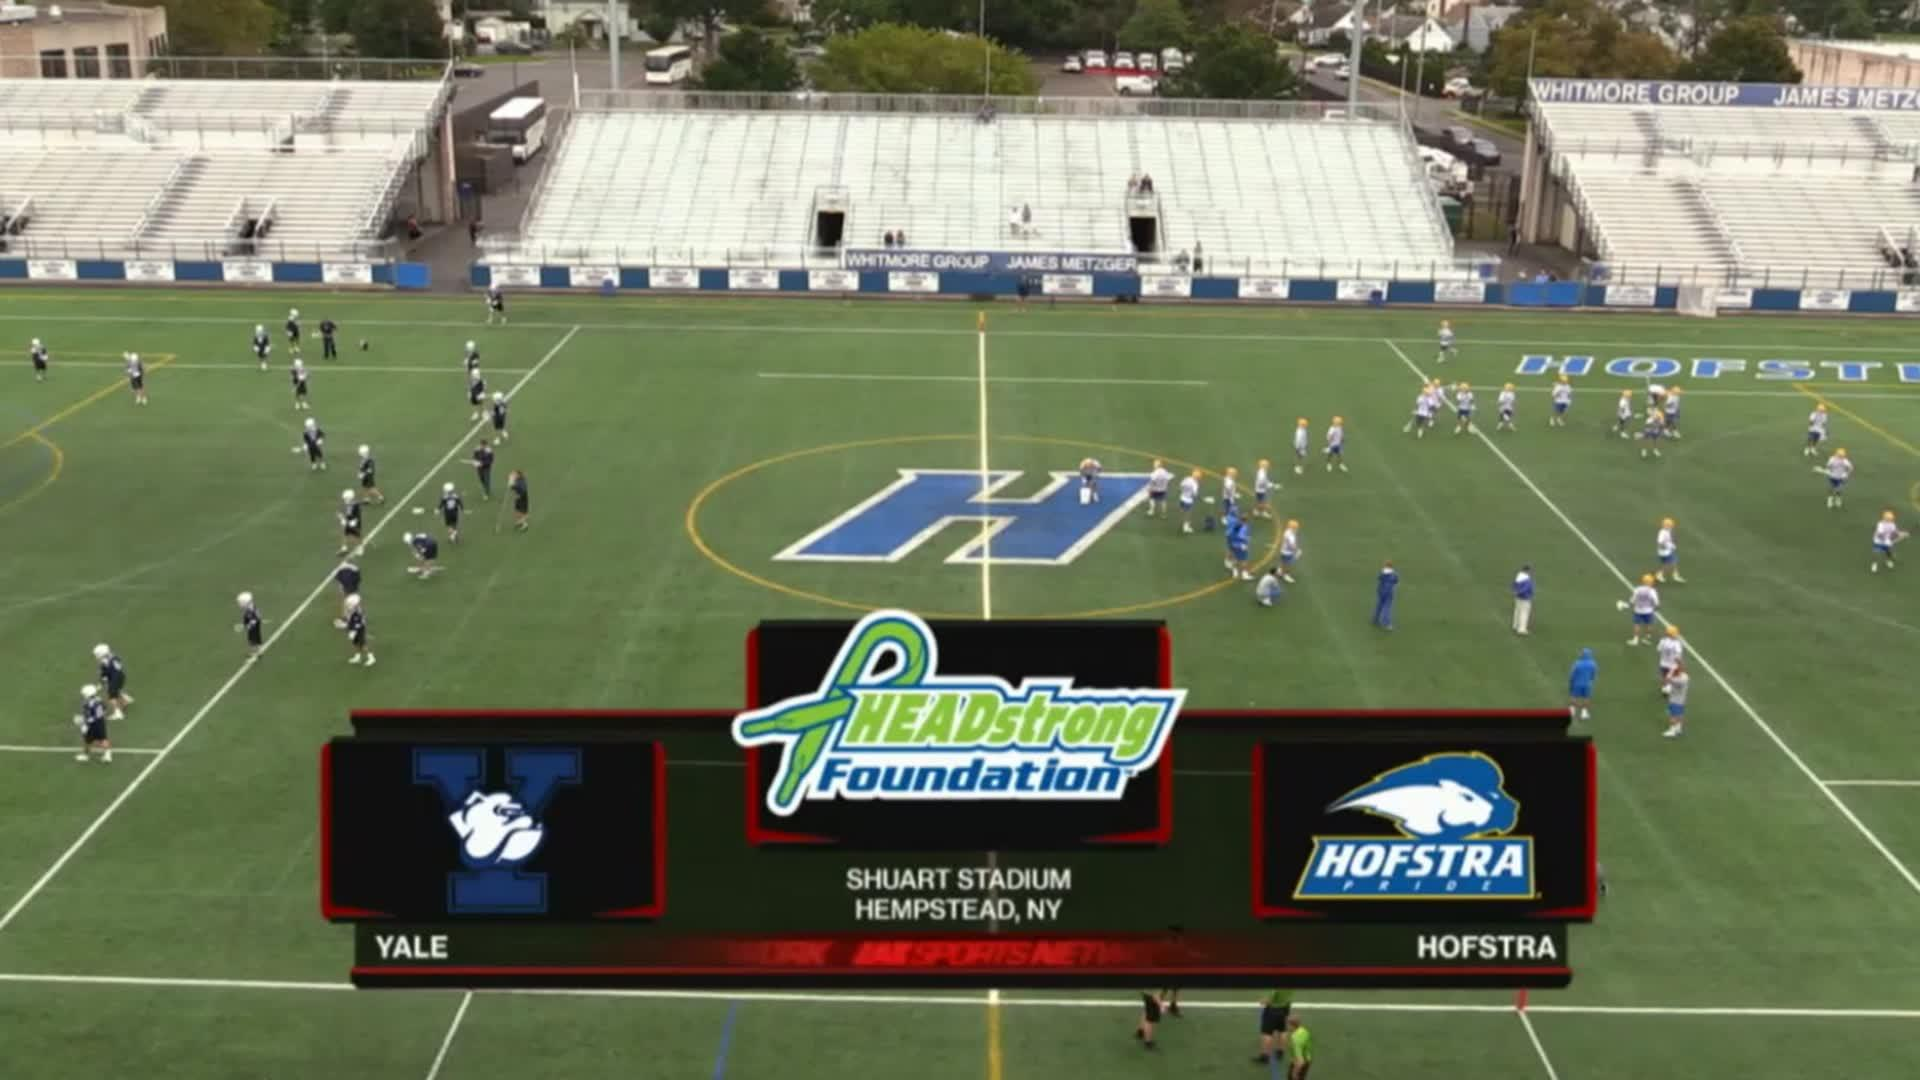 Headstrong Classic 10/8/16: Yale vs Hofstra